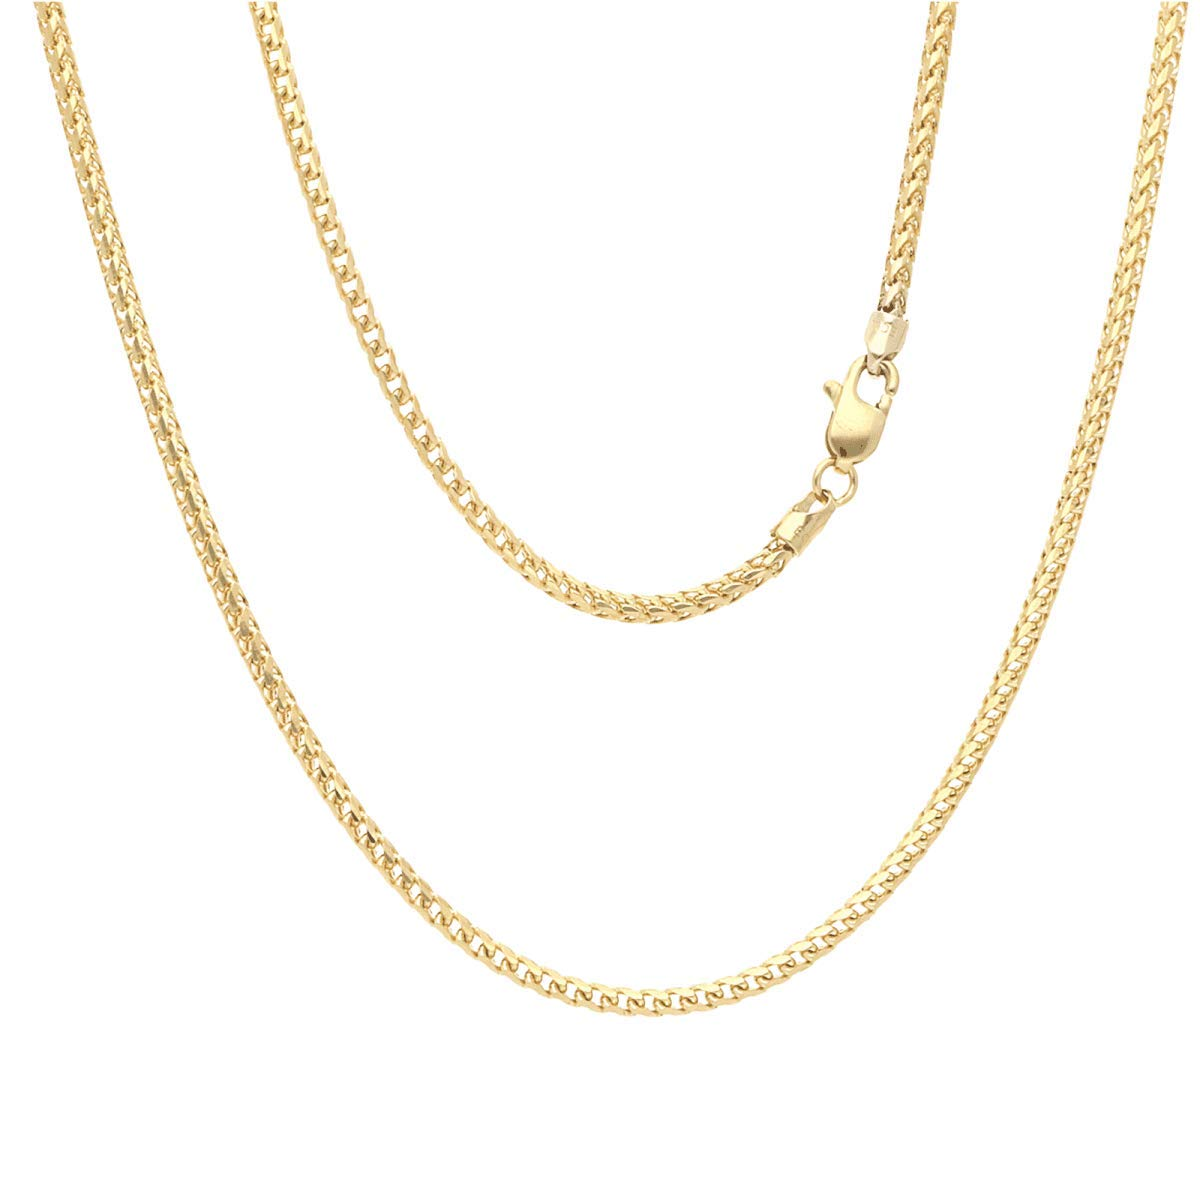 Solid 14K Yellow Gold 2mm Franco Chain Necklace 22'' 24'' 26'' 28'' HEAVY, 24